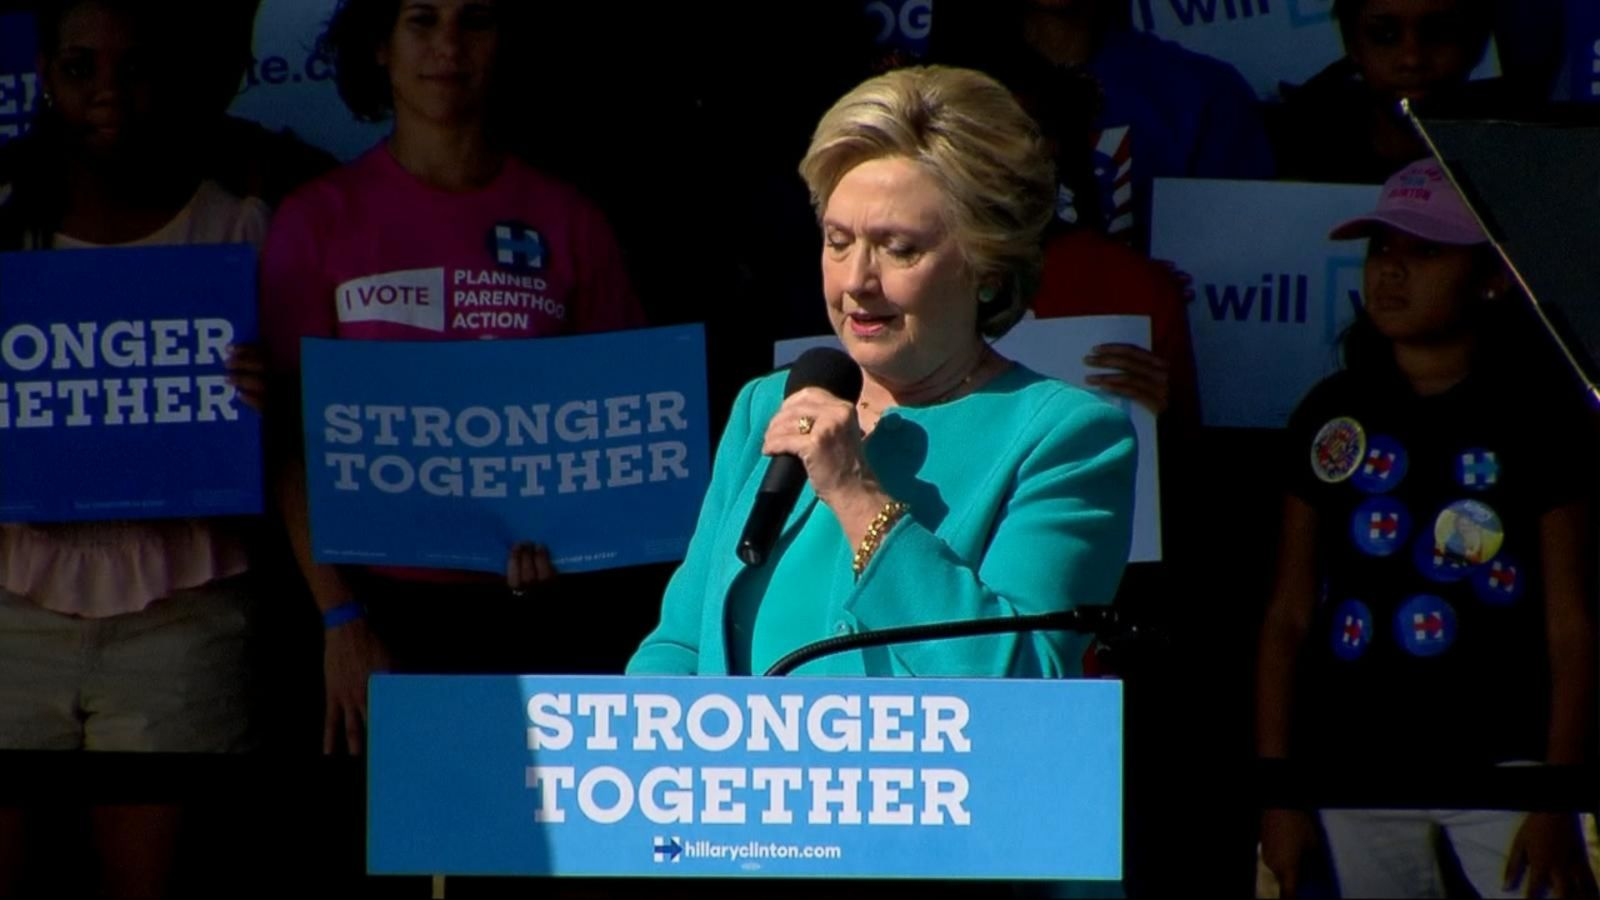 VIDEO: Hillary Clinton, First Lady Michelle Obama Hit Campaign Trail Together